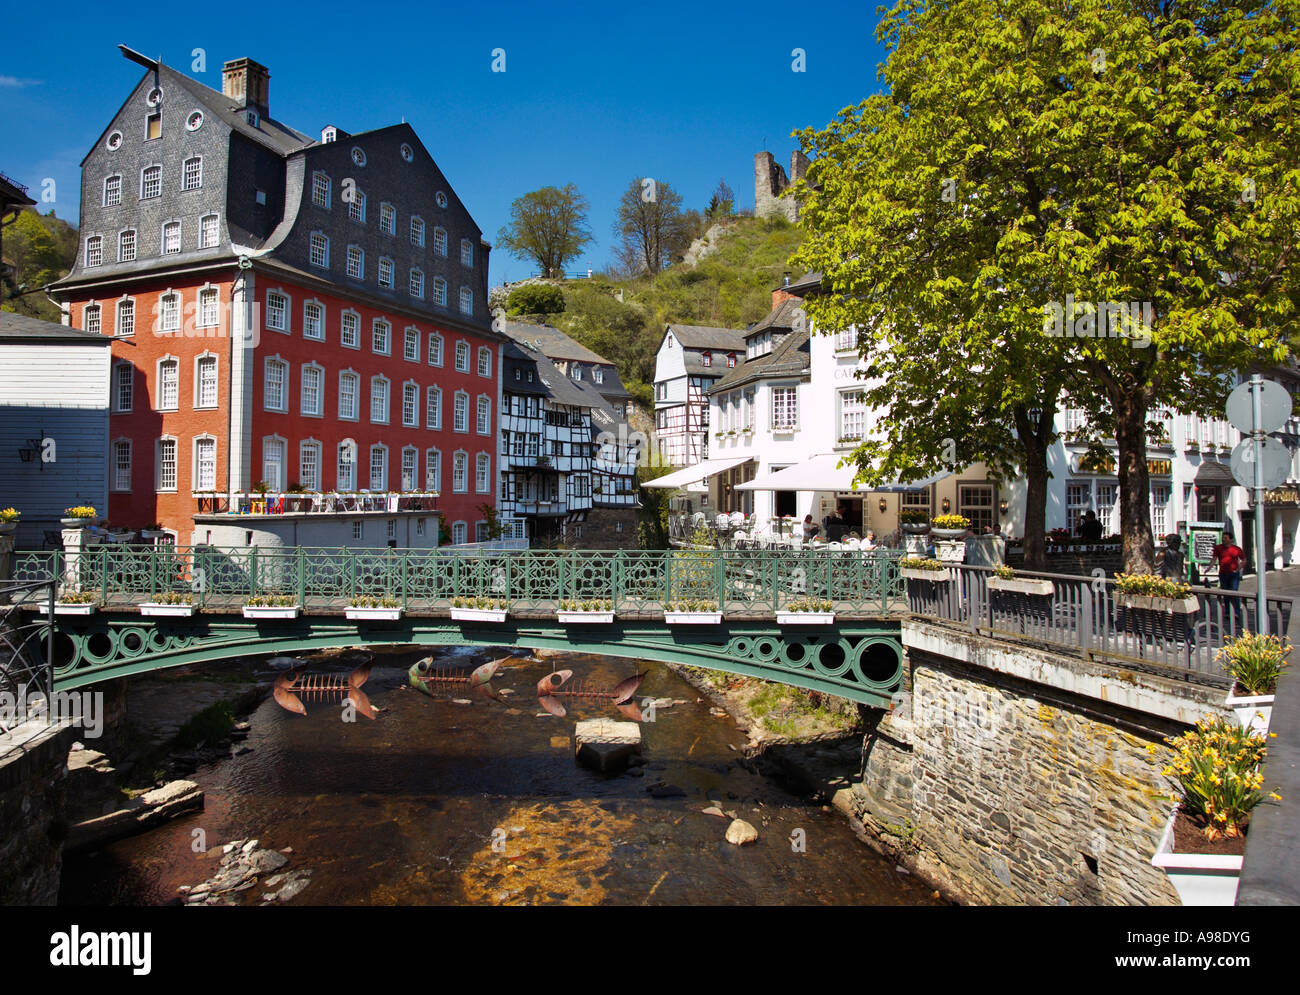 Rotes Haus on the River Rur at Monschau, Eifel Region, Germany - Stock Image